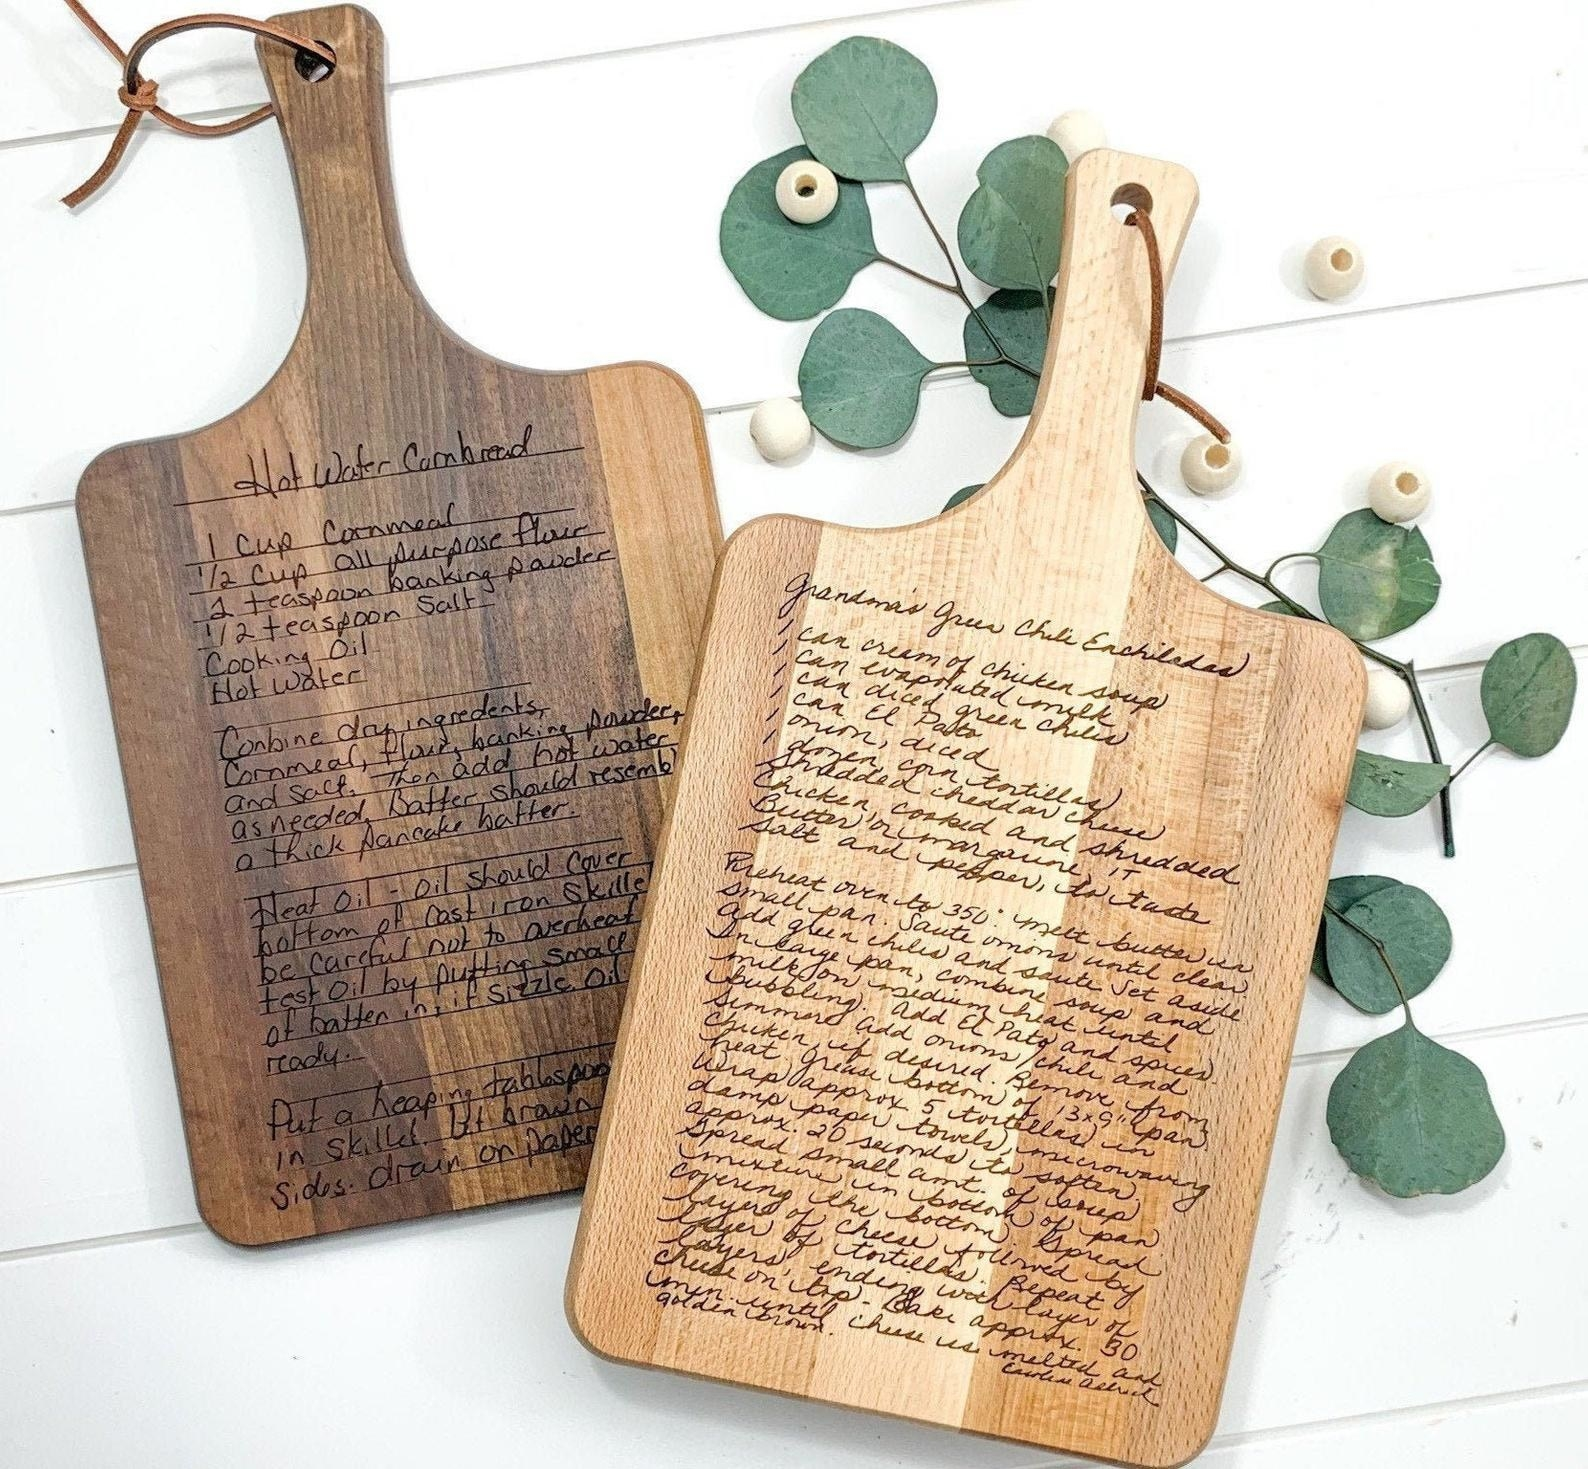 Two cutting boards in light and dark wood with different fonts of recipes engraved on them